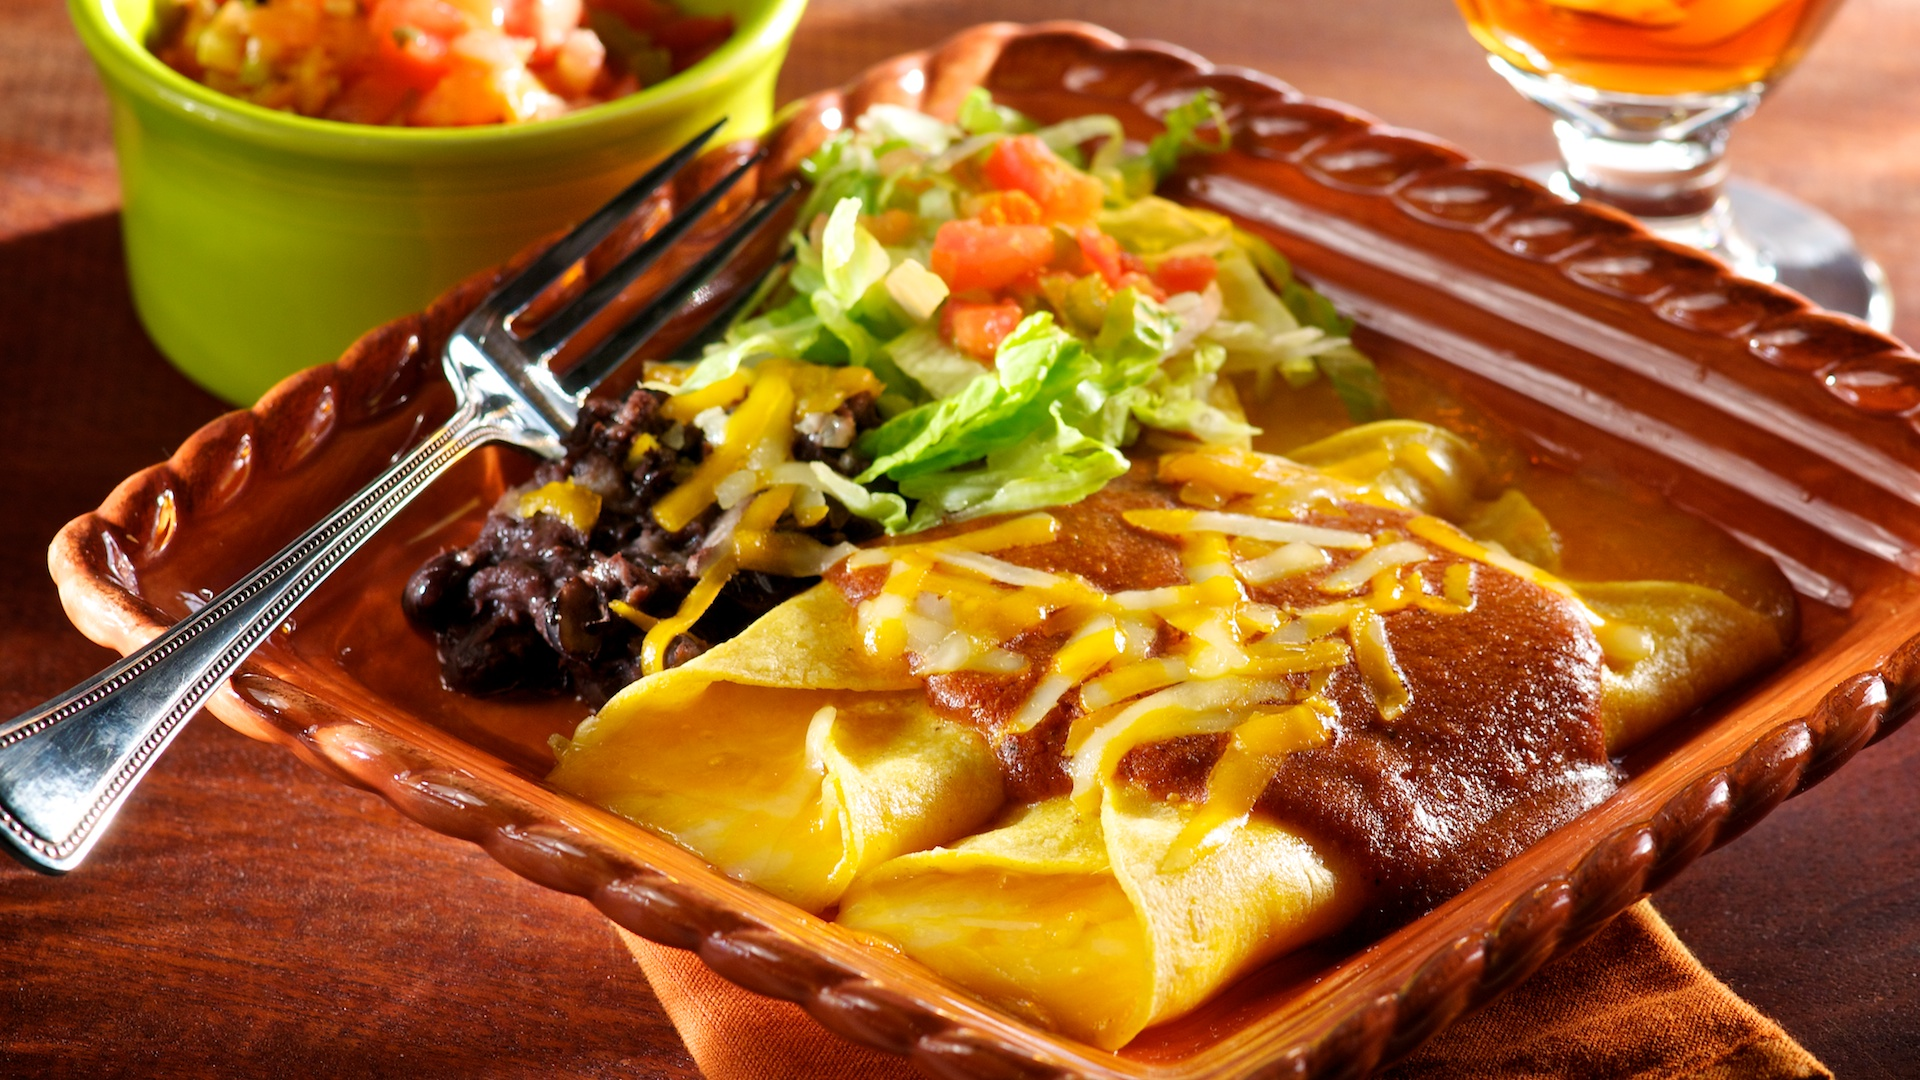 This easy-to-prepare meatless recipe offers a great way to serve a comforting cheese enchilada dinner the whole family will enjoy–without you spending all night in the kitchen.